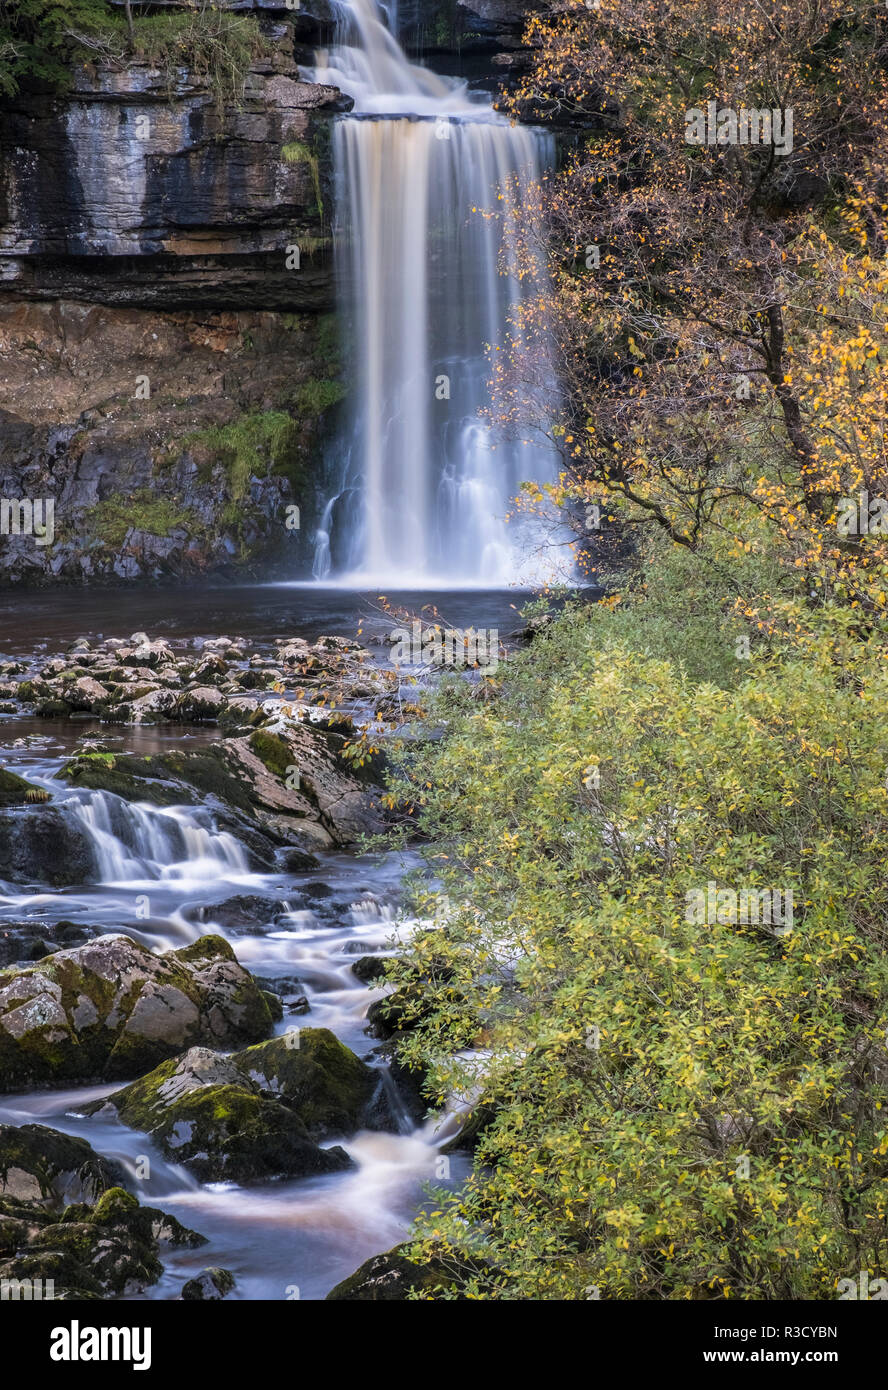 Thornton Force waterfall, part of the Ingleton Waterfall Trail, autumn, Yorkshire Dales National Park, North Yorkshire, England, UK - Stock Image